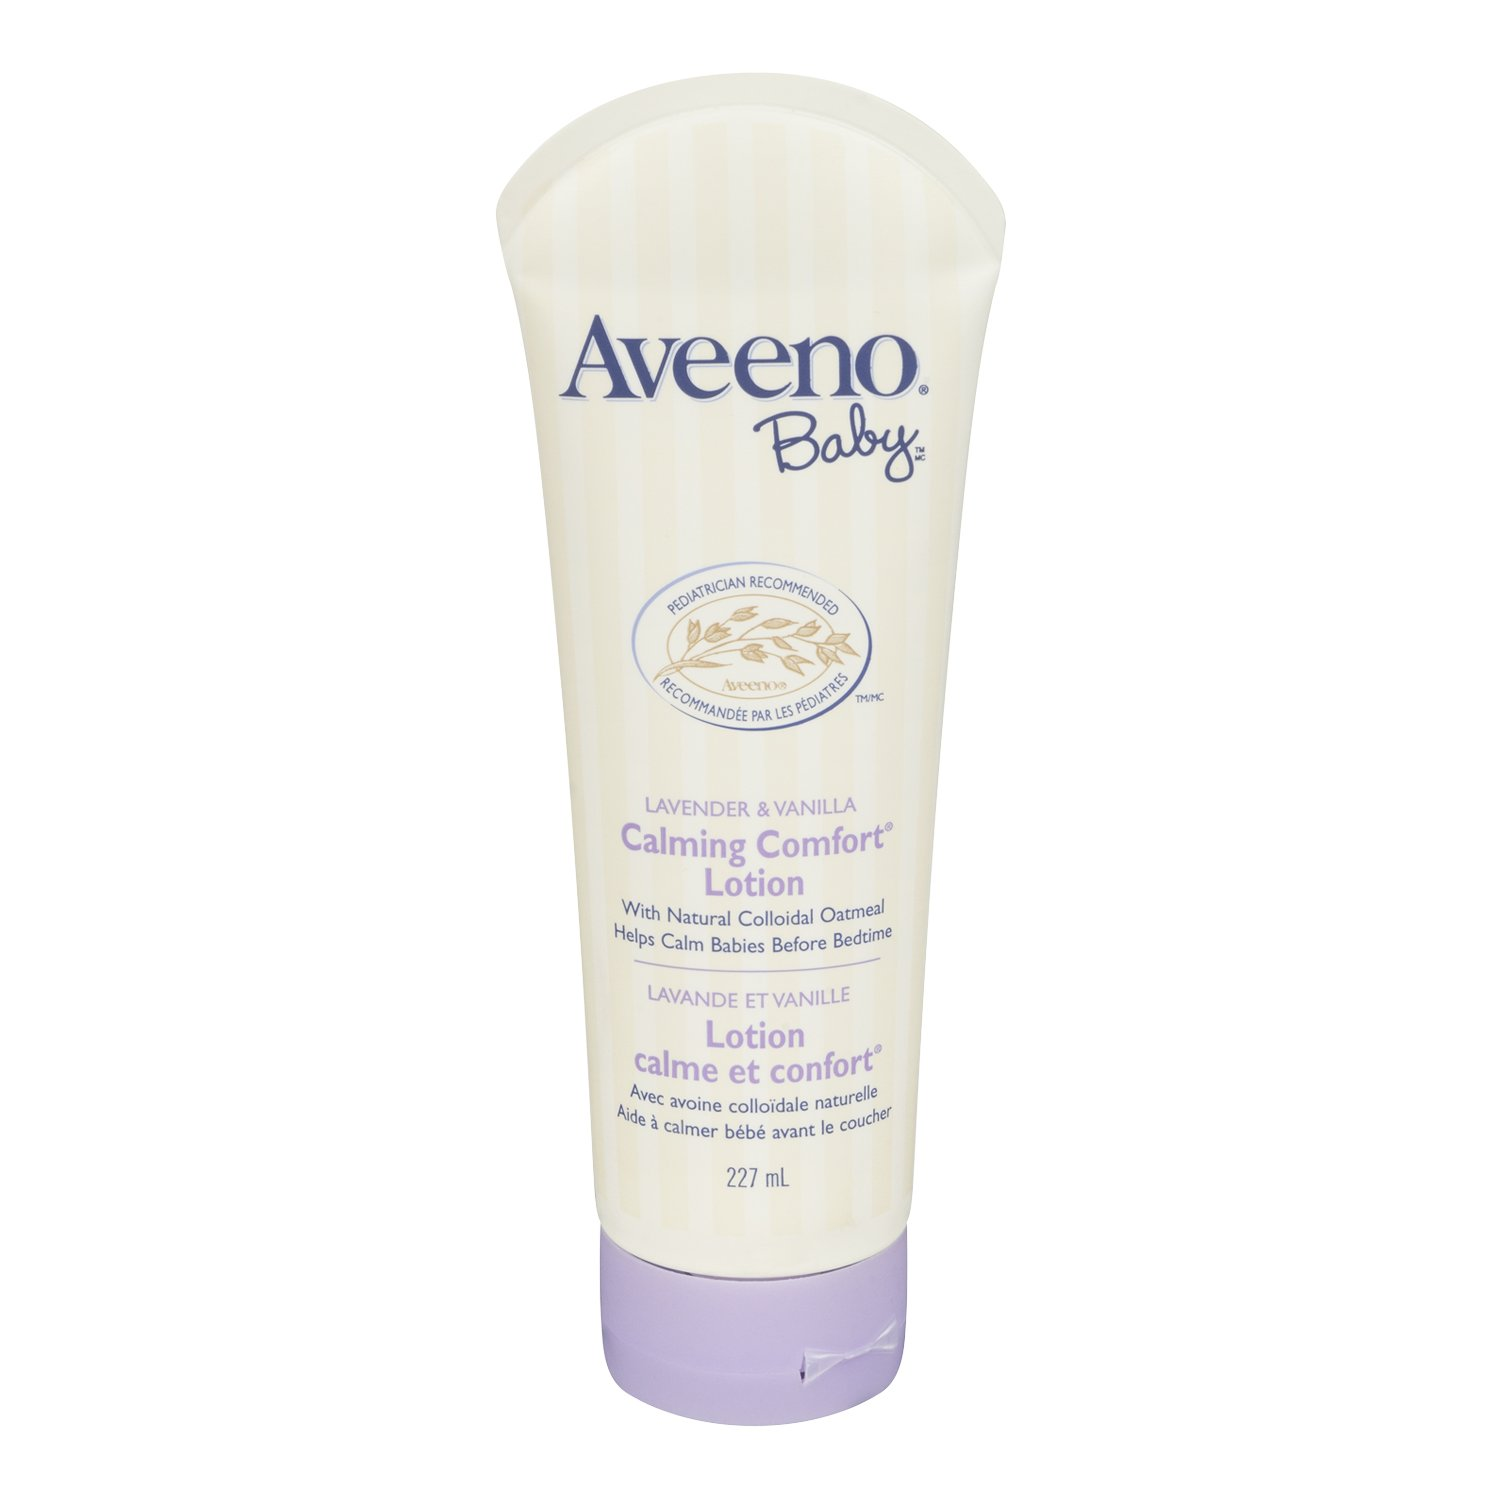 $4.99 (was $7.99) Aveeno Baby Calming Comfort Fast-Absorbing Lotion